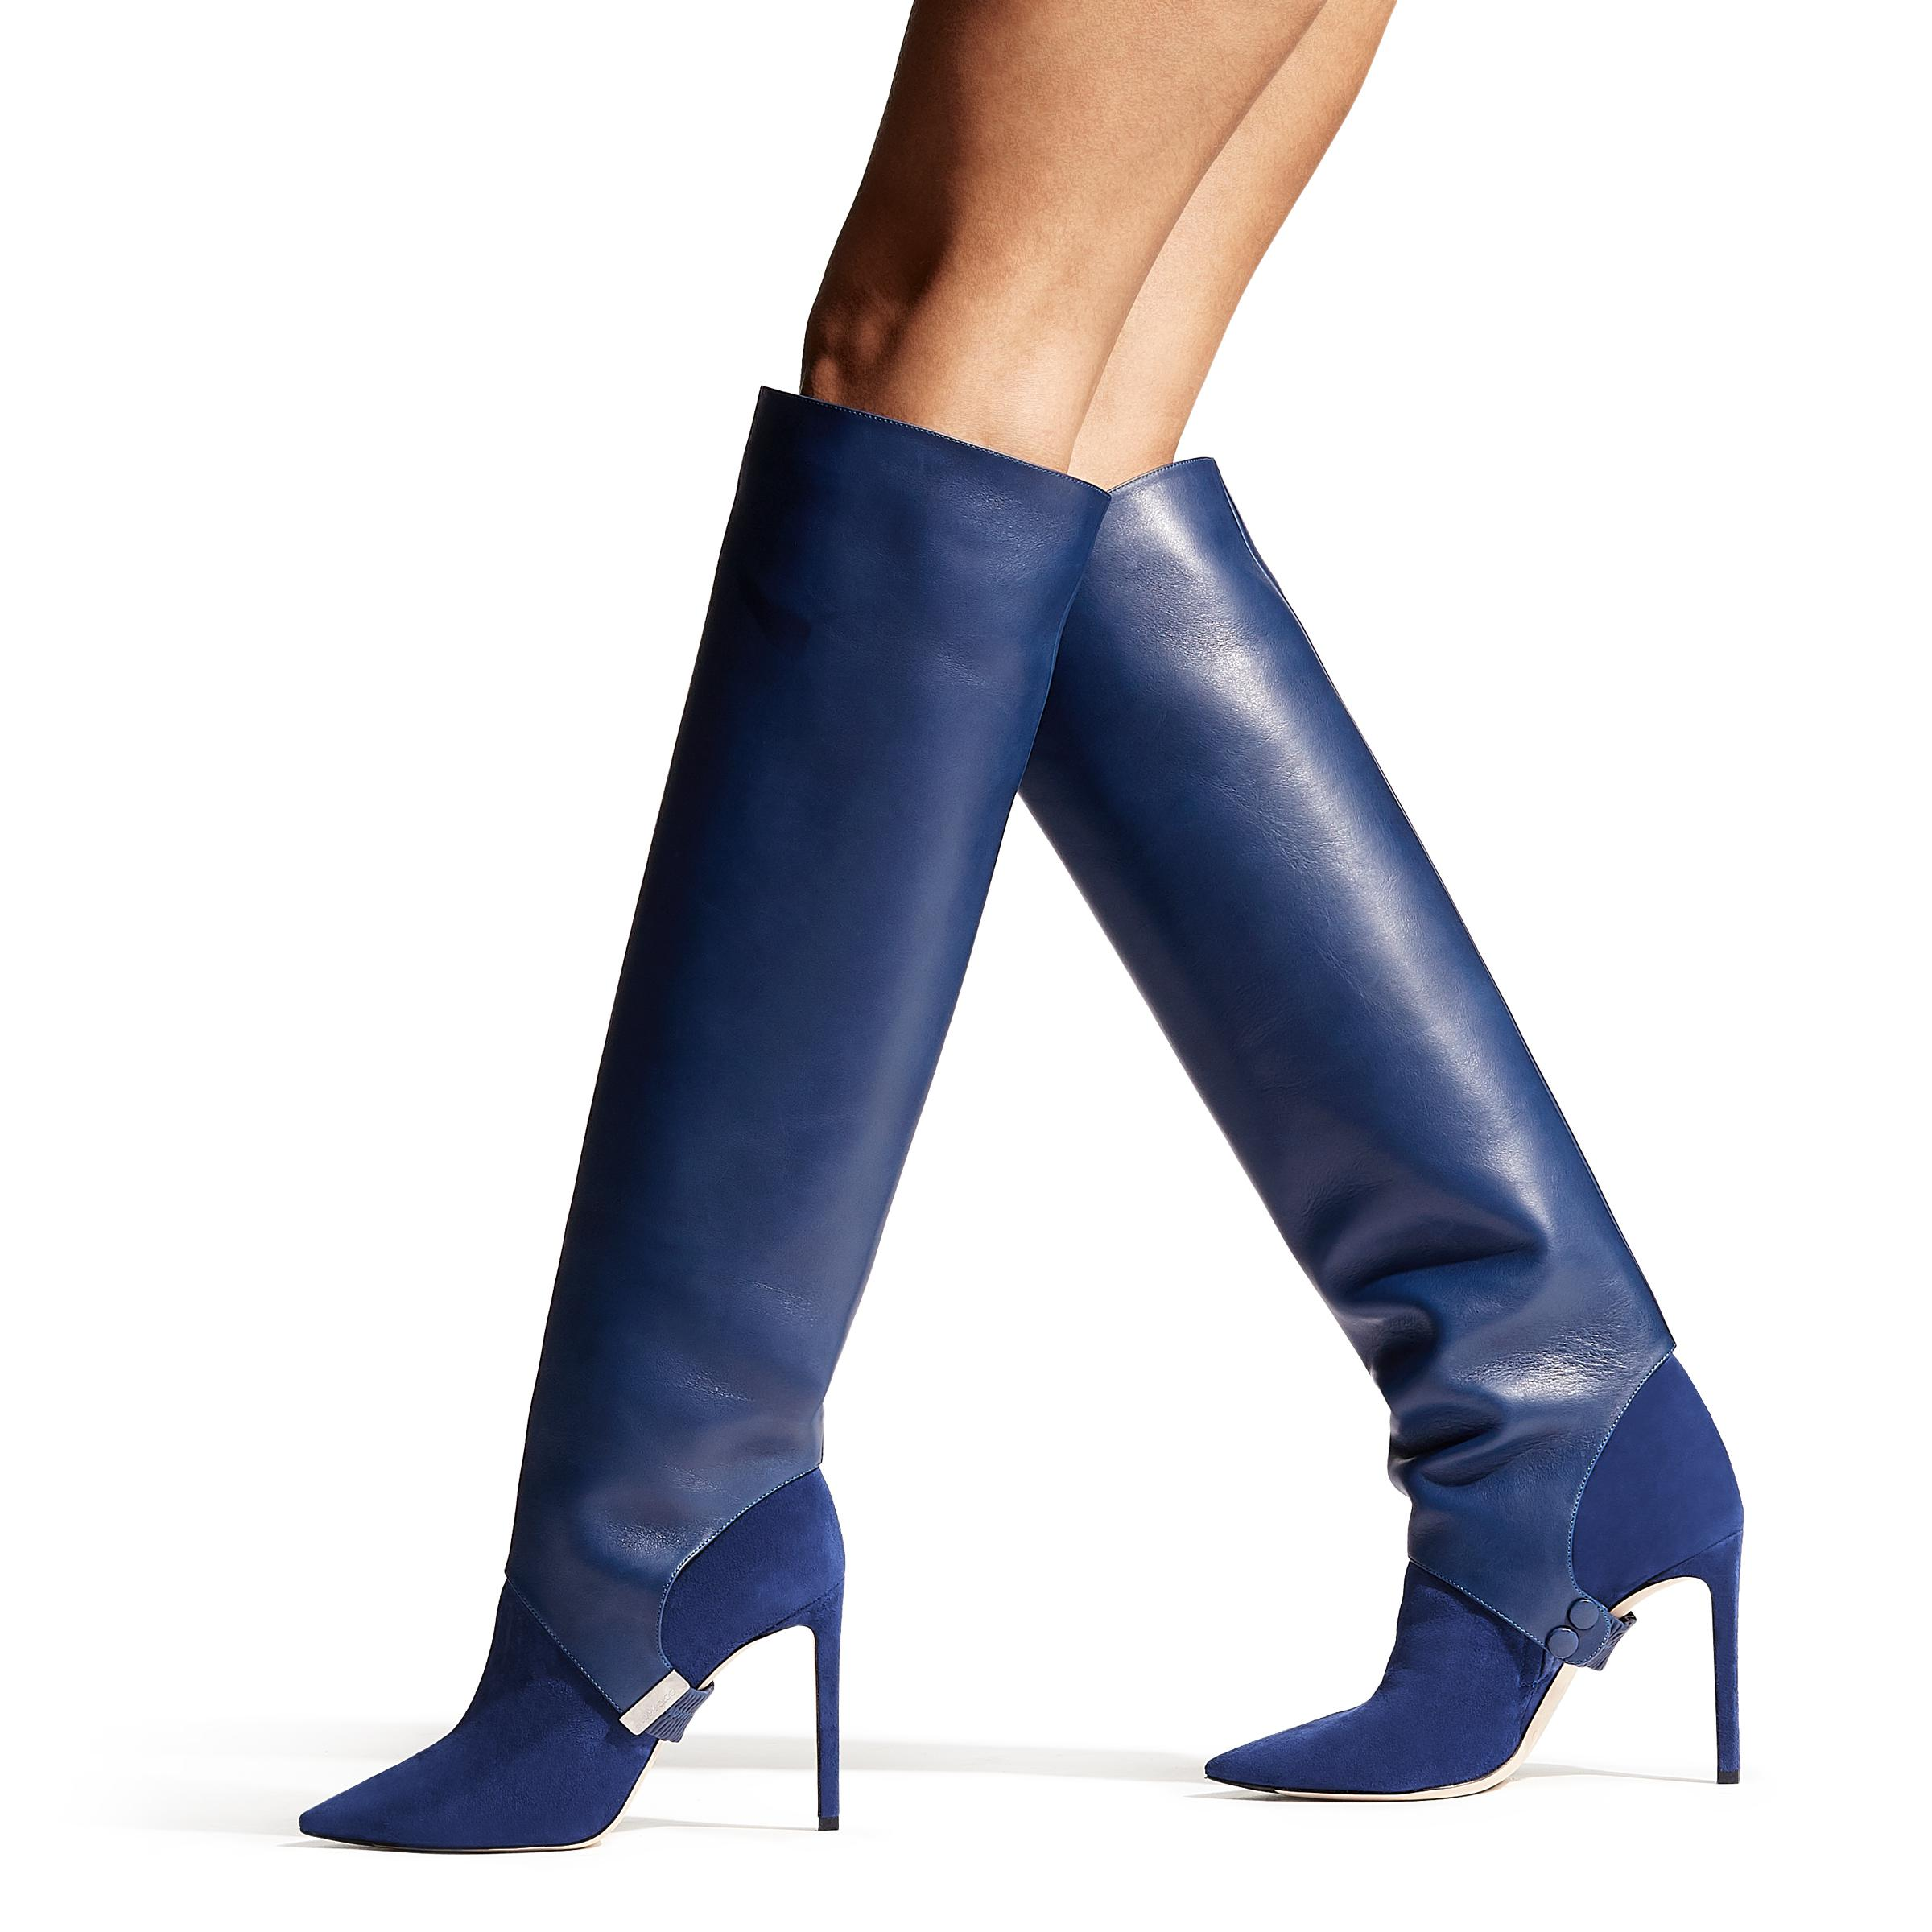 d2187b8044e3 Lyst - Jimmy Choo Hurley 100 Pop Blue Suede And Calf Leather Two ...